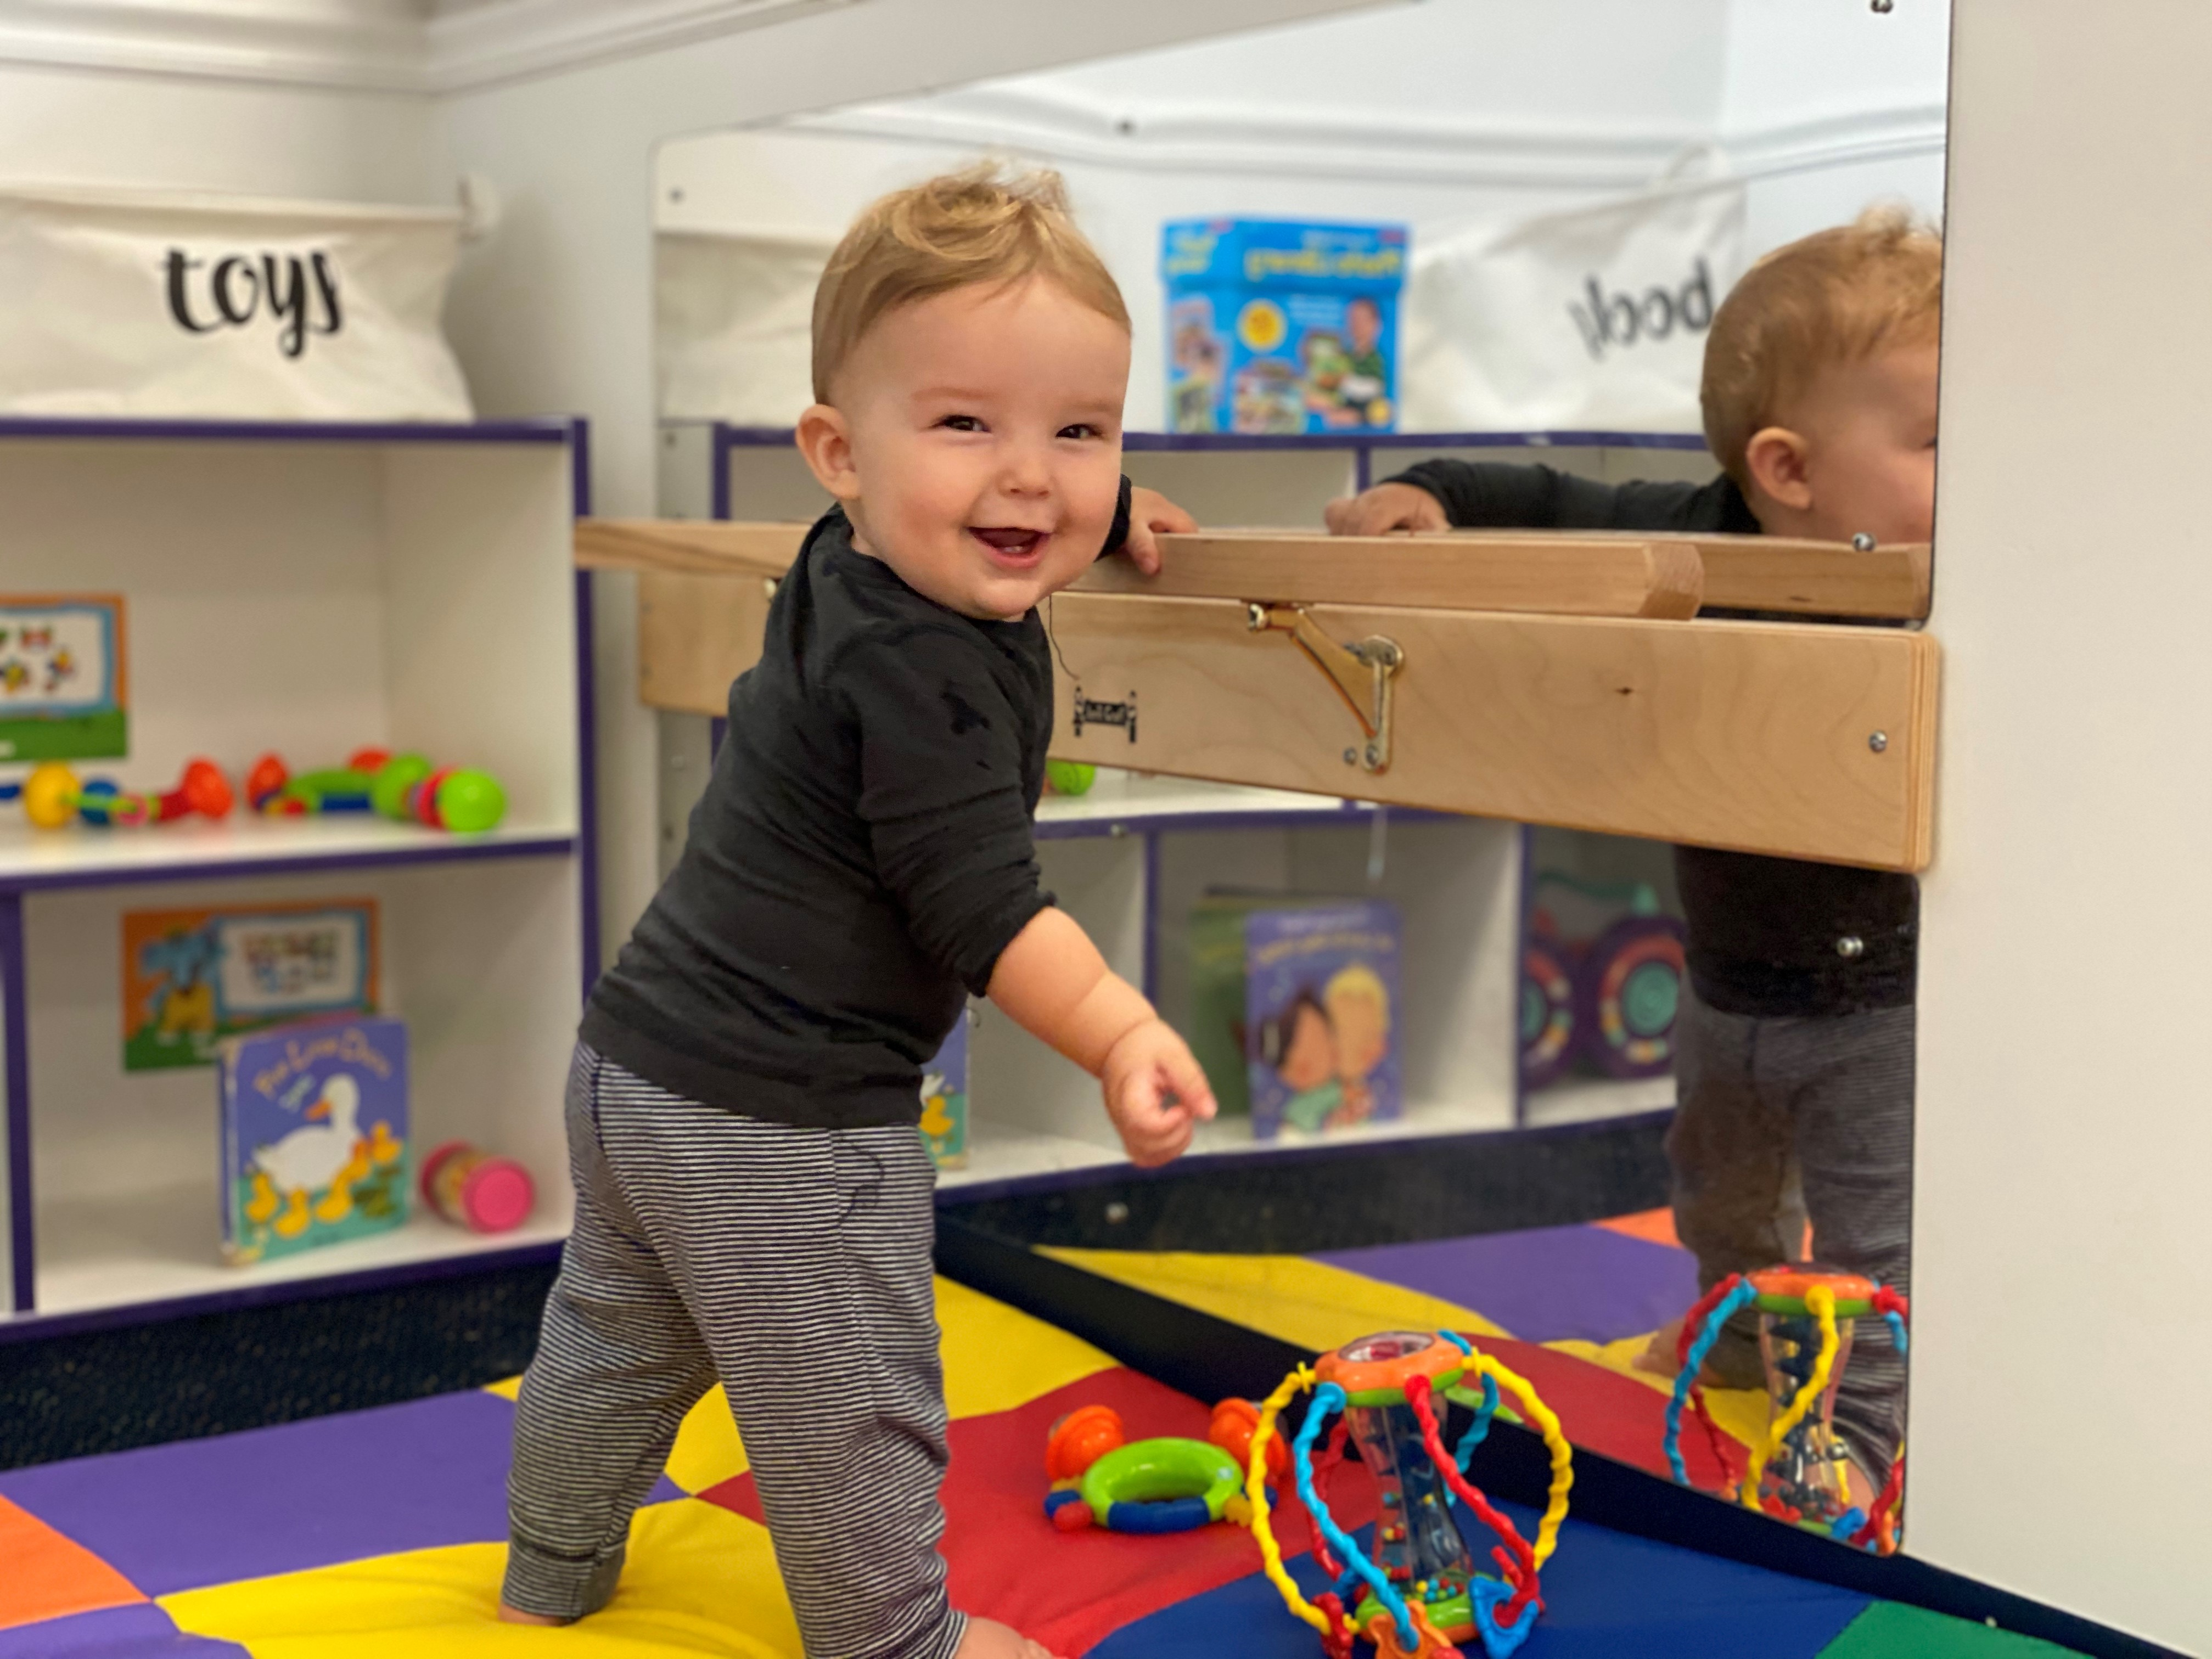 Early childhood is a time of remarkable brain development; these years lay the foundation for subsequent learning. Nurturing, interaction, nutrition, and stimulus during this period are paramount. Children experience all this and more at The Learning